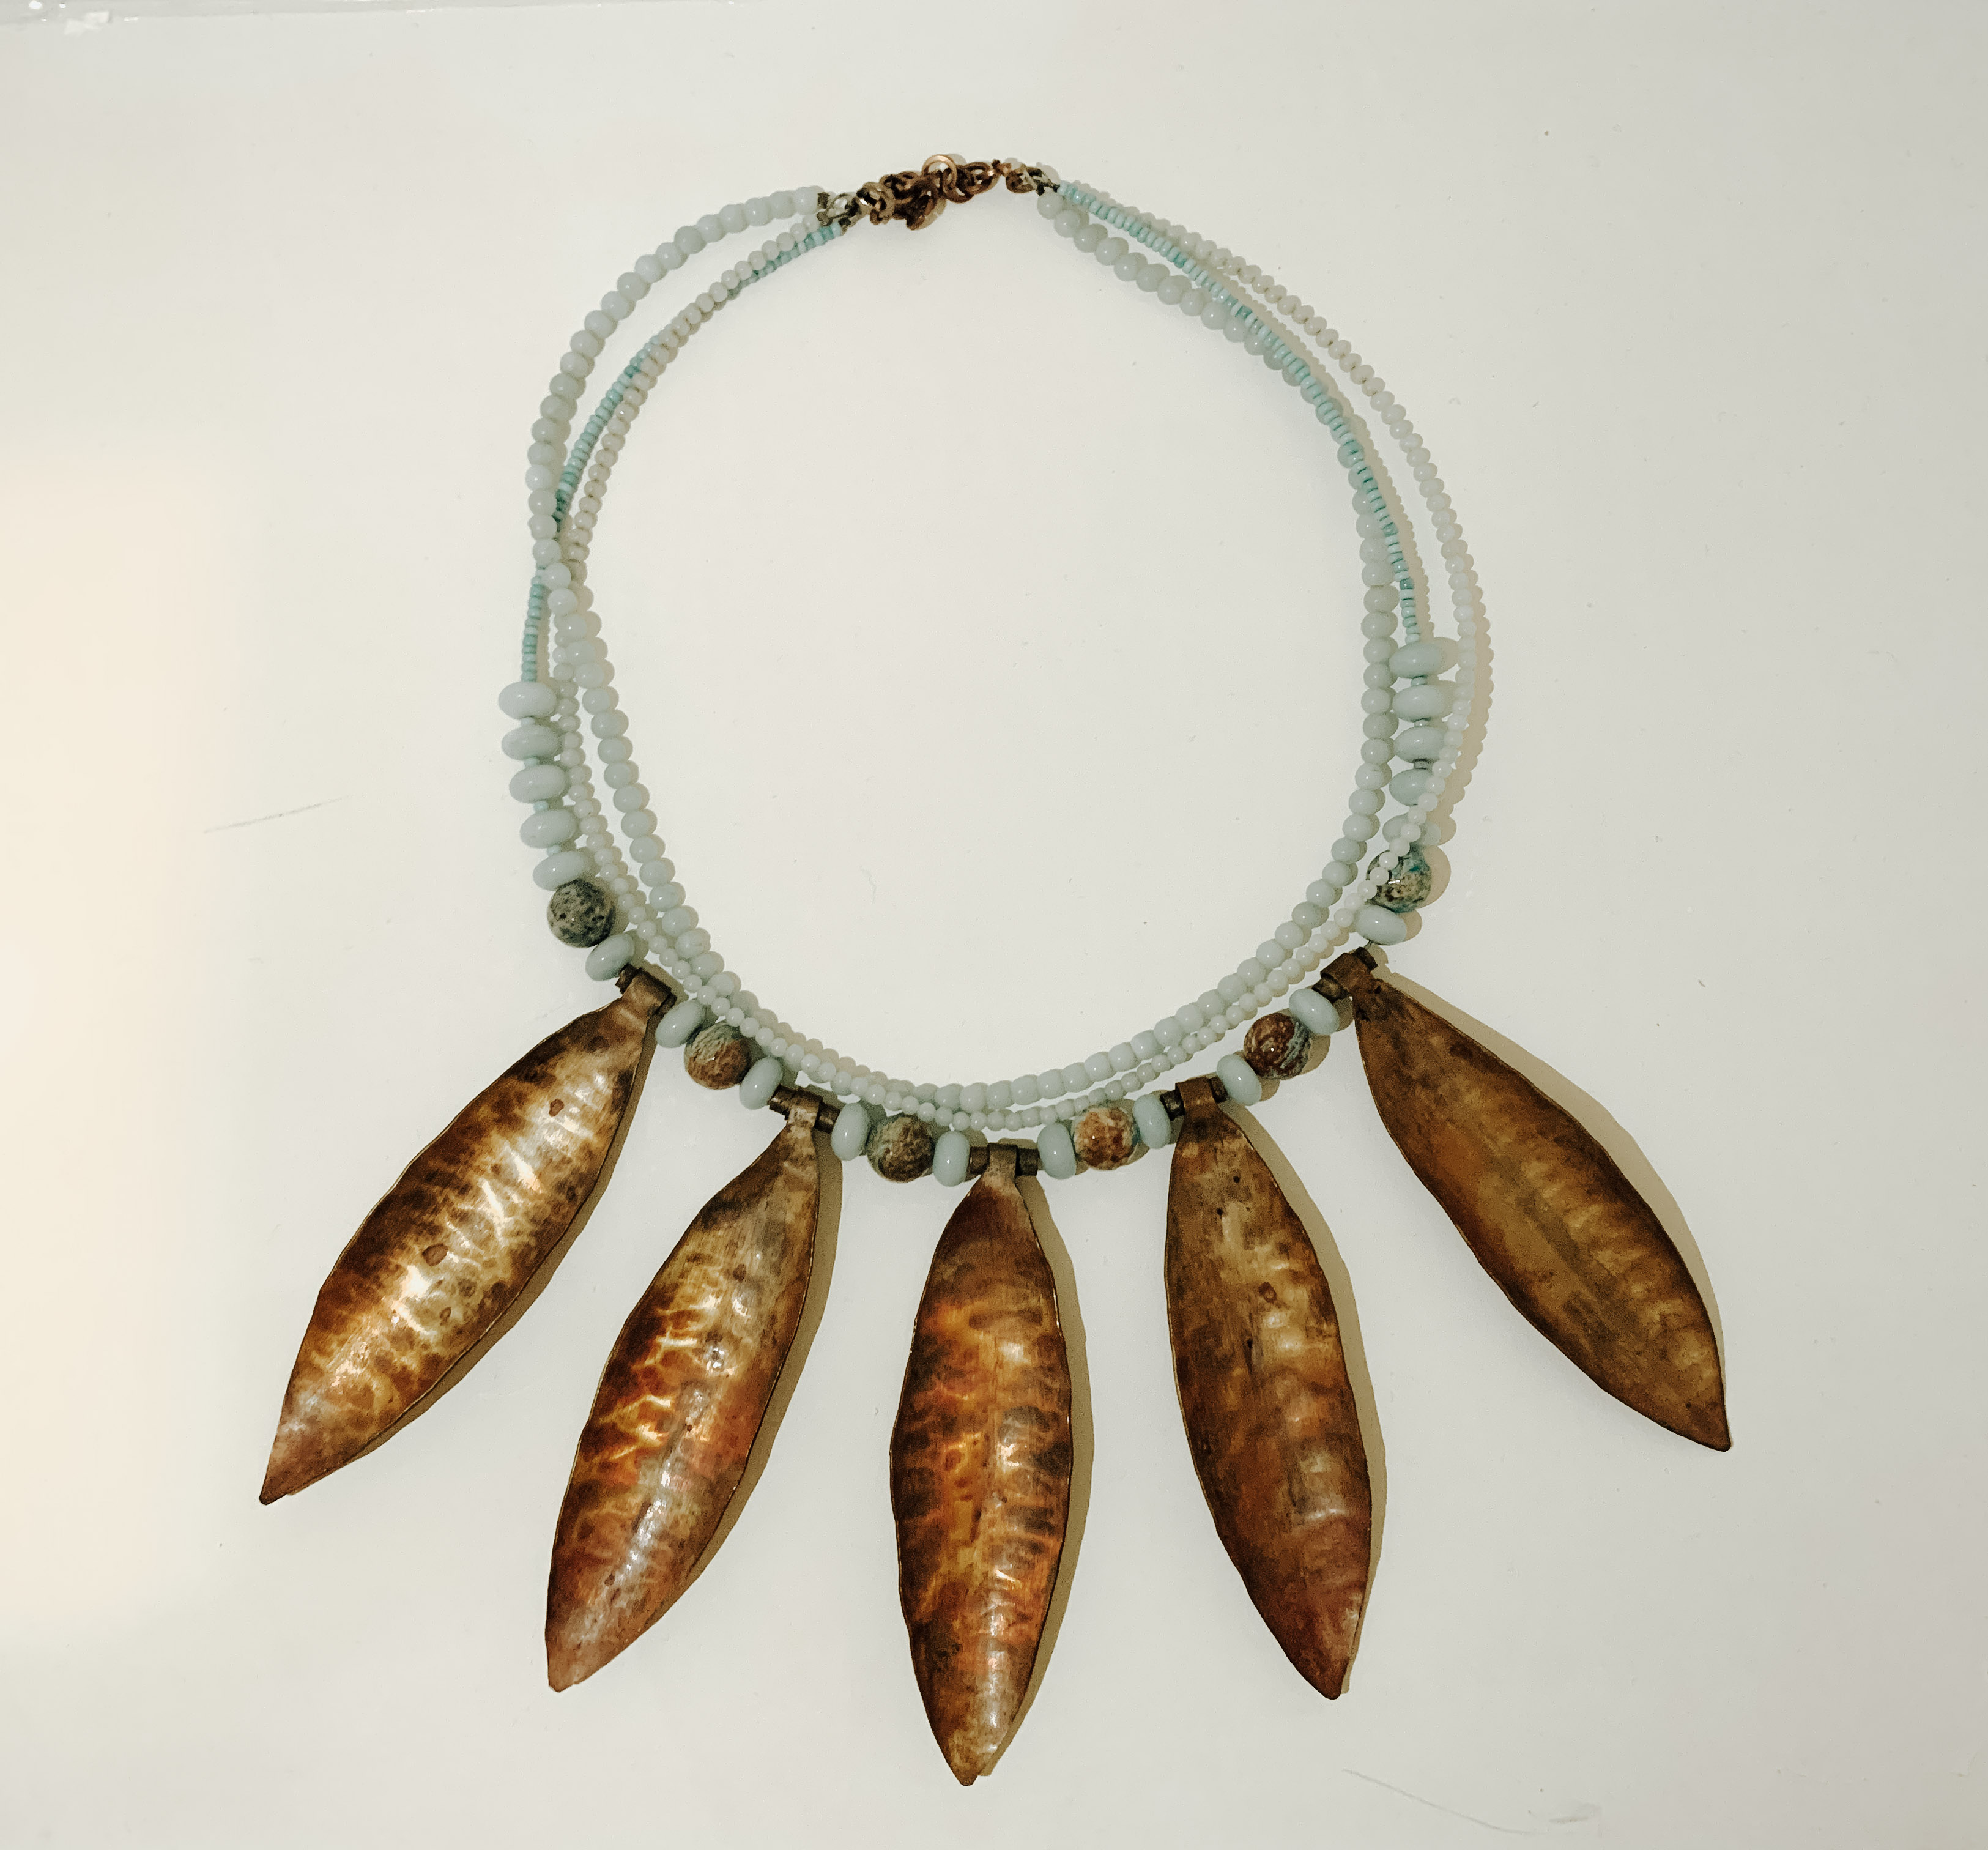 Falling Leaves Necklace - Yvonne Musey Johnson